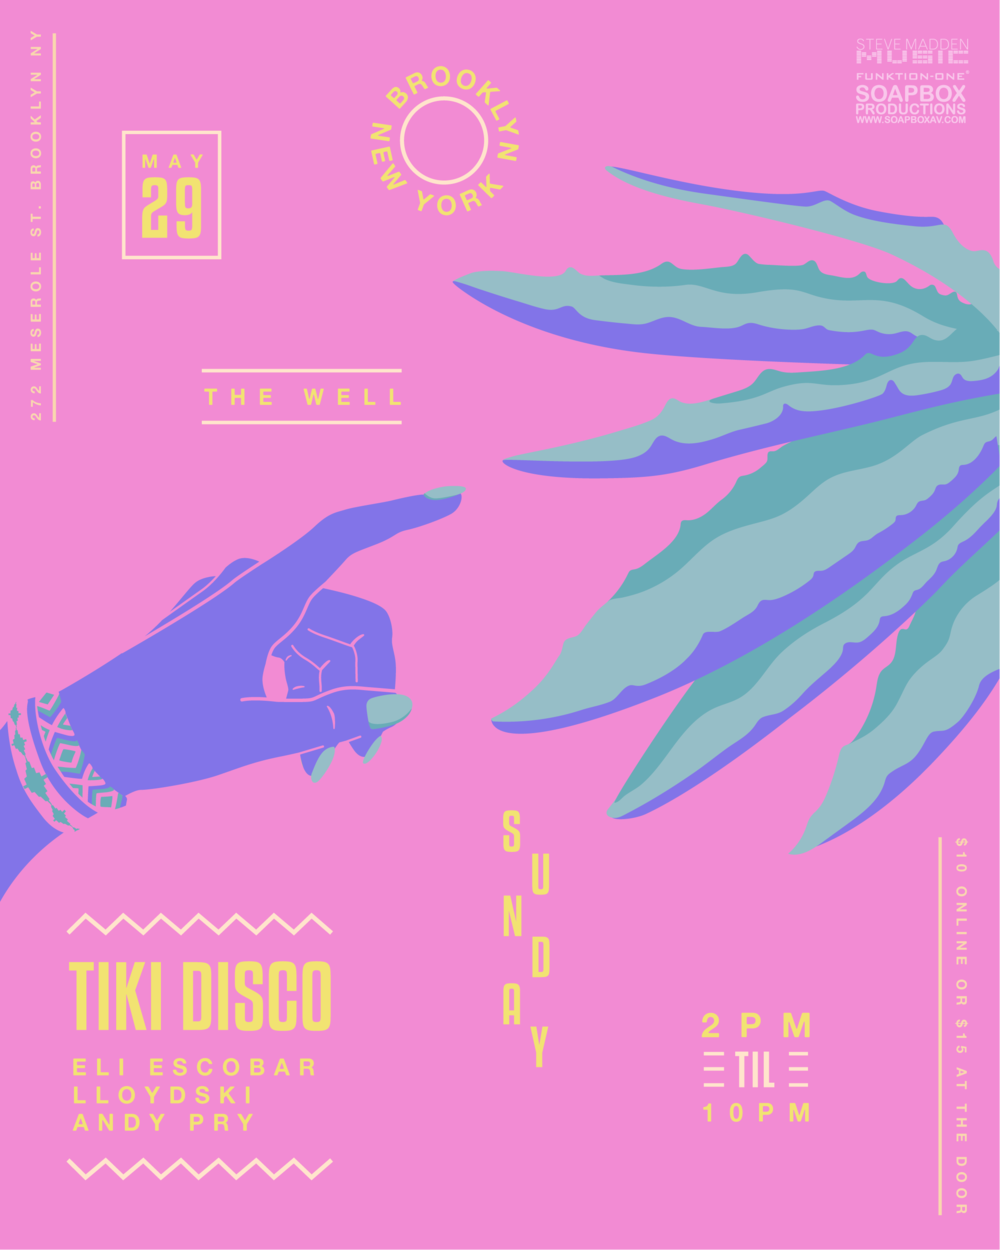 2016-08-09_tikidisco_poster_01-08 copy.png